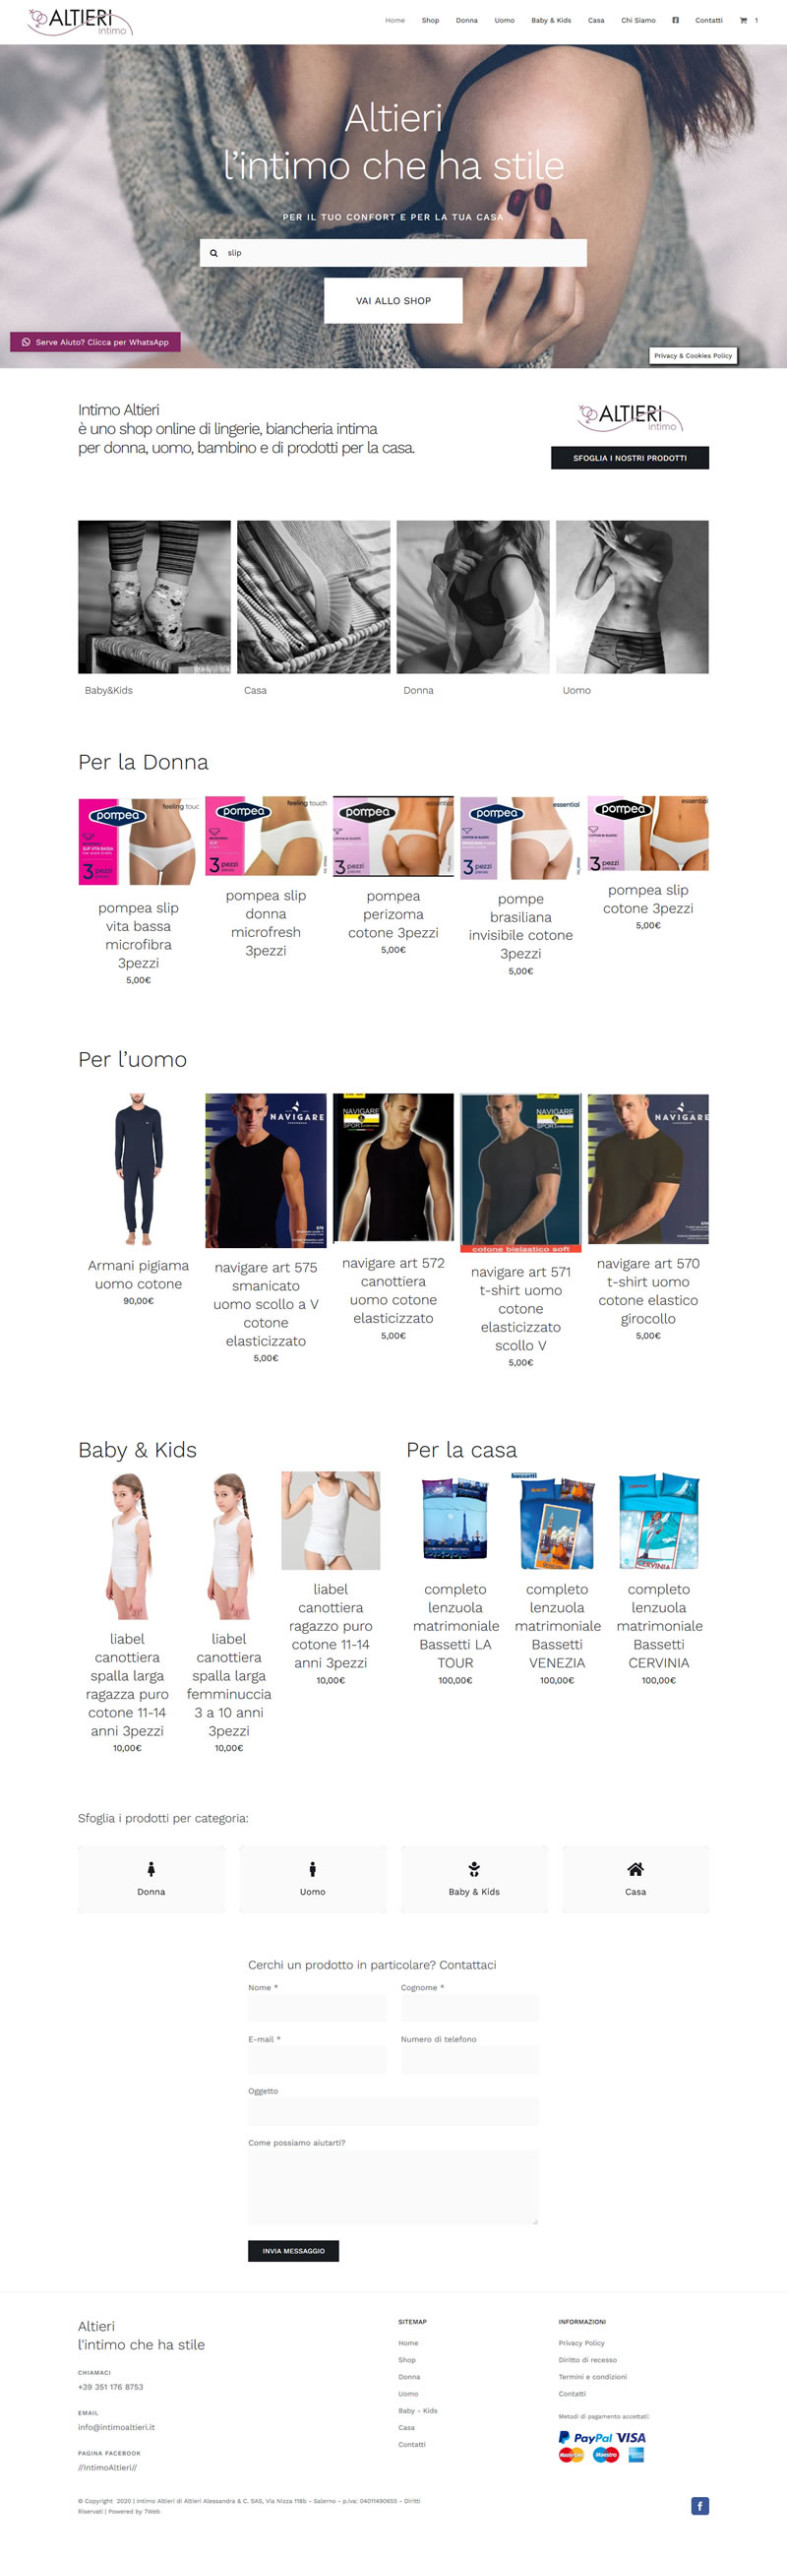 Intimo Altieri - Online Shop - Sito web e-commerce - Setteweb.com Portfolio Sito Web WordPress 7Web 2020